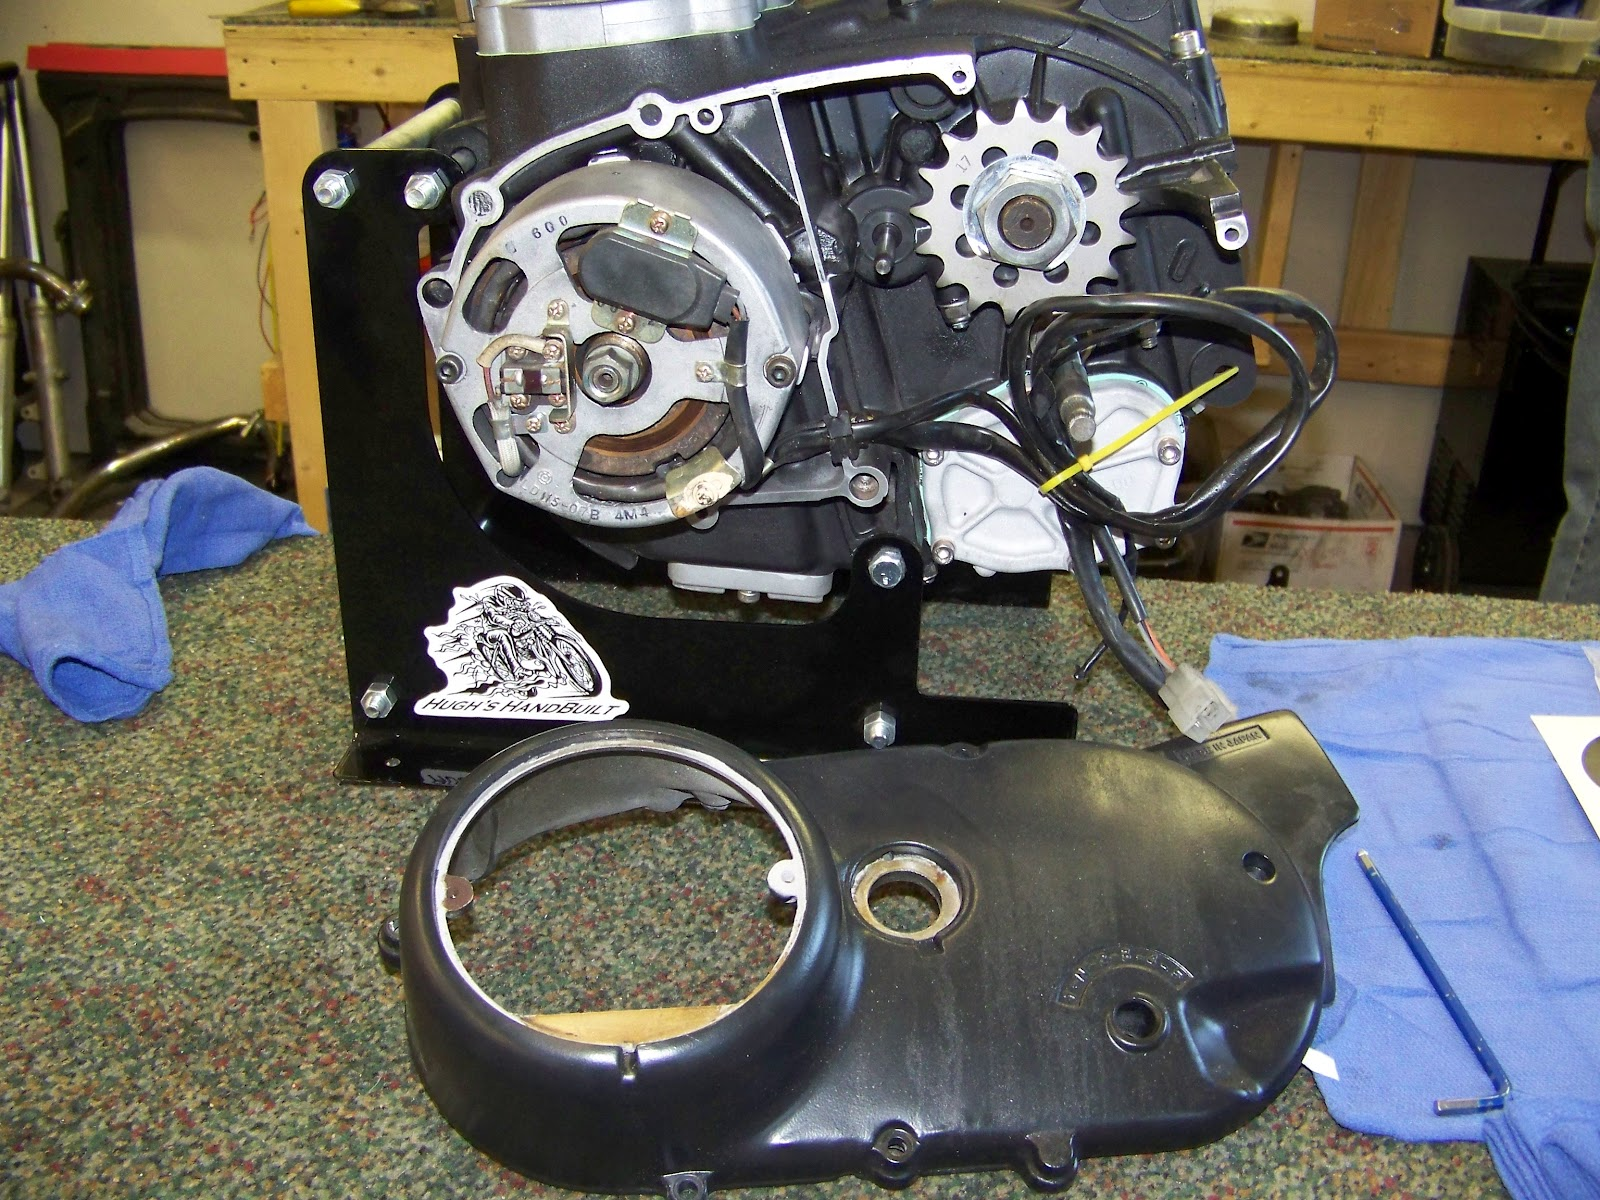 How To Install Your Hughs Handbuilt Pma System On Xs650 Wiring Harness Routing You Wont Be So Lucky Have The Already Tidied Up Like Above Youll Remove Chain Guard From Engine It Slips Over Shift Shaft